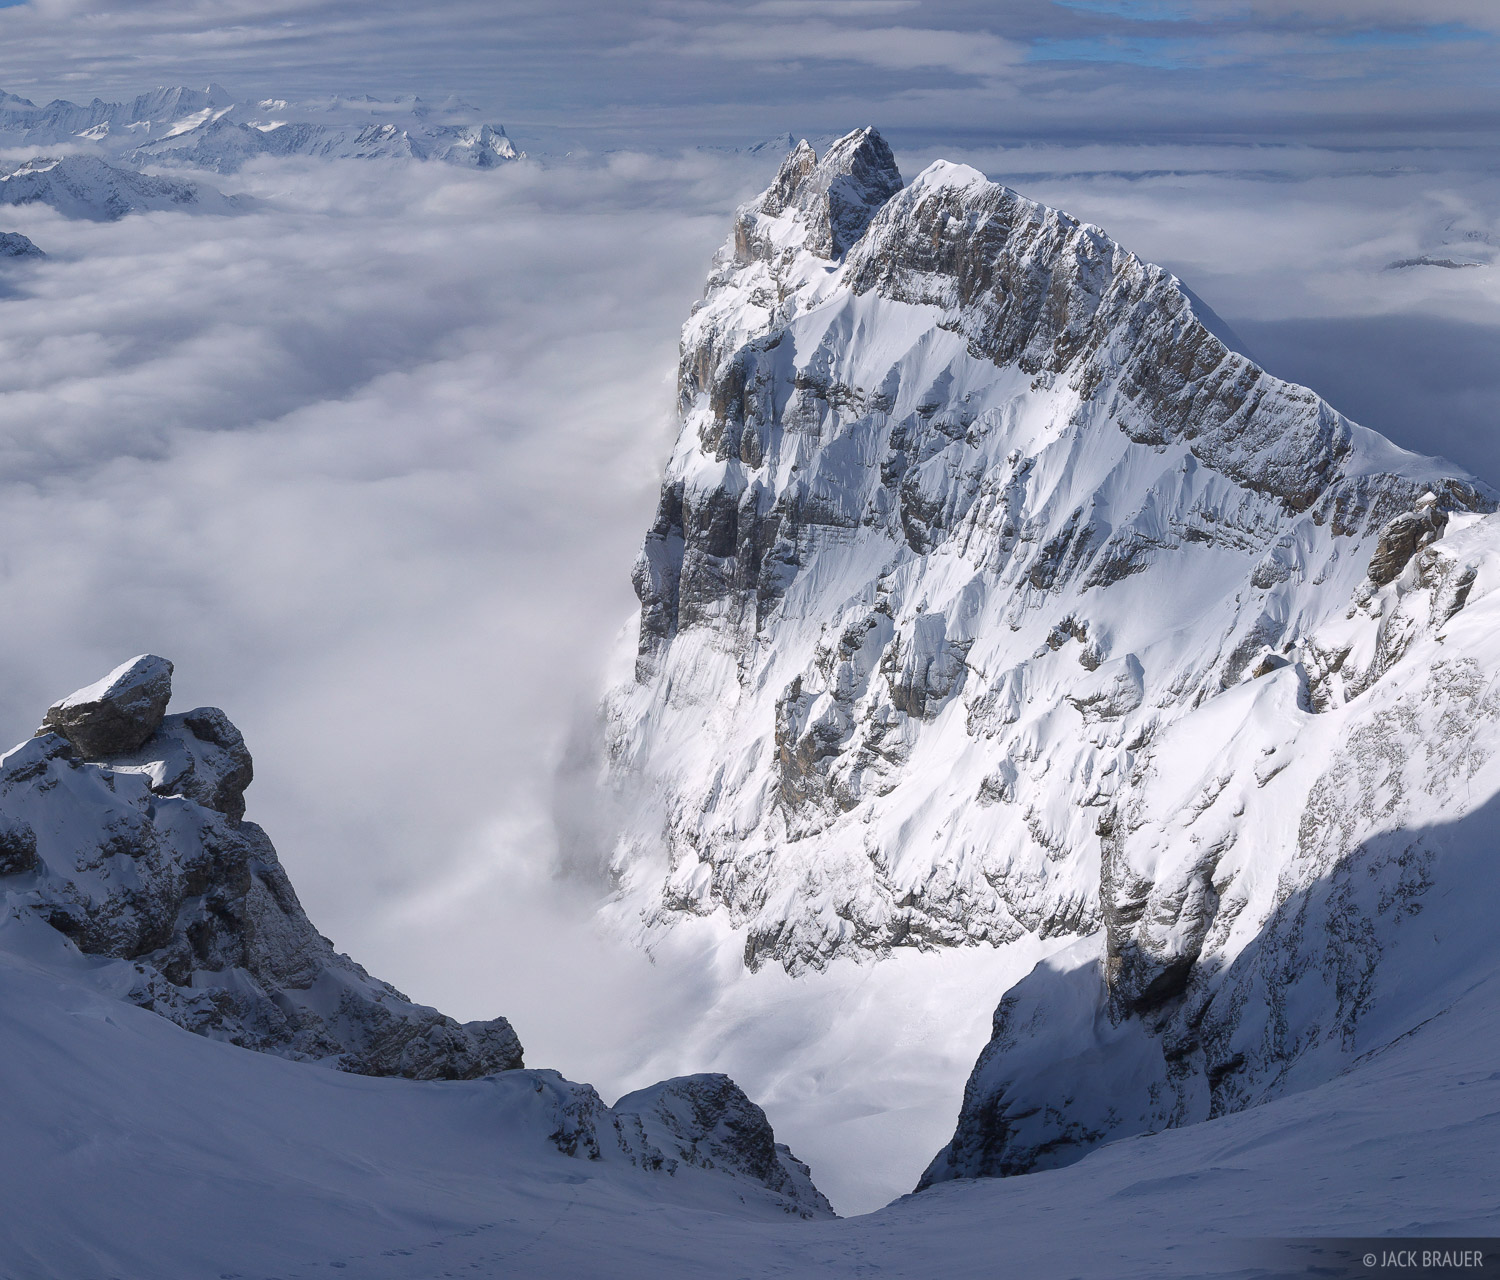 The sharp, steep ridge of Reissend Nollen (3,003m) towers above the clouds, as seen from Klein Titlis - January.